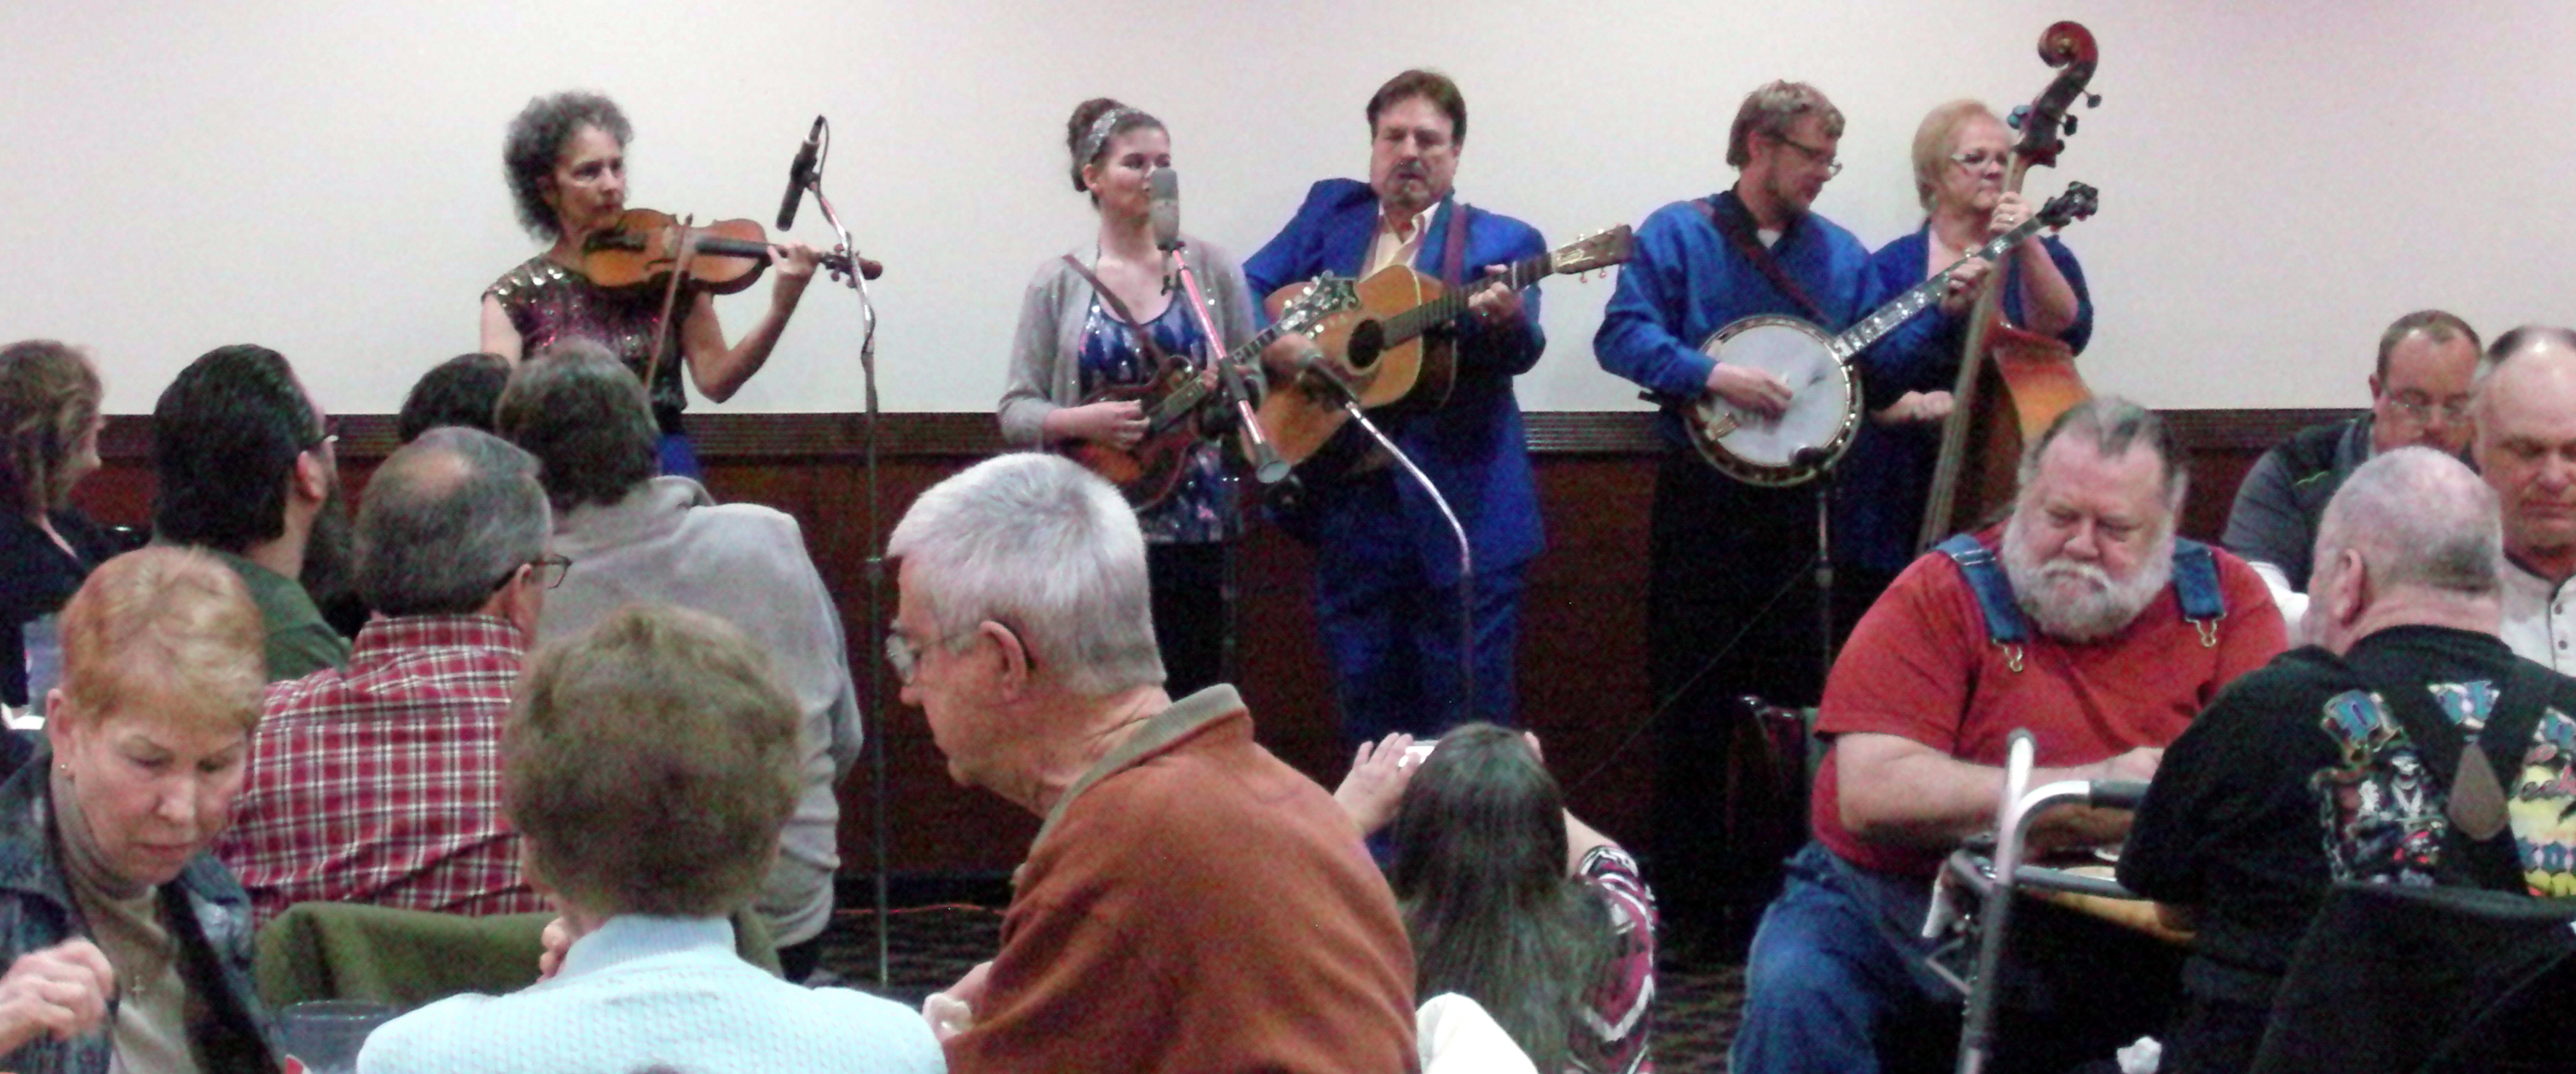 Vernon McIntyre's Appalachian Grass entertains at the 2016 Chinese Breakdown Dinner